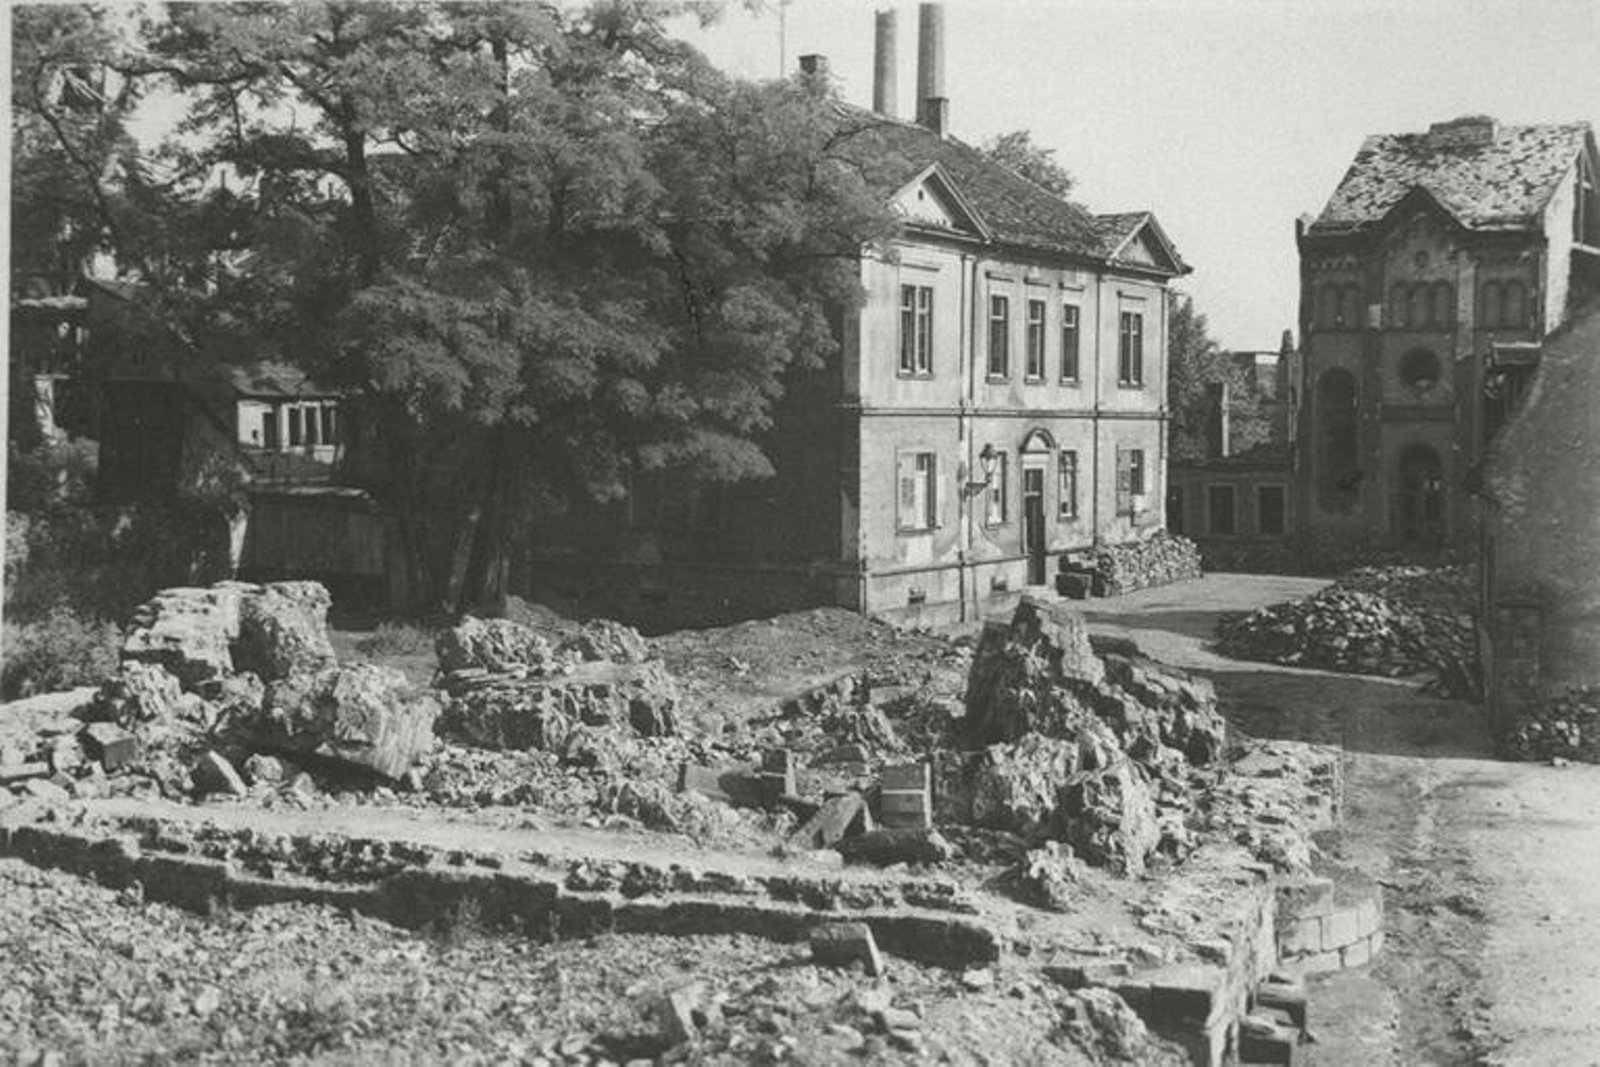 worms_synagogue_rubble_1258942.jpg